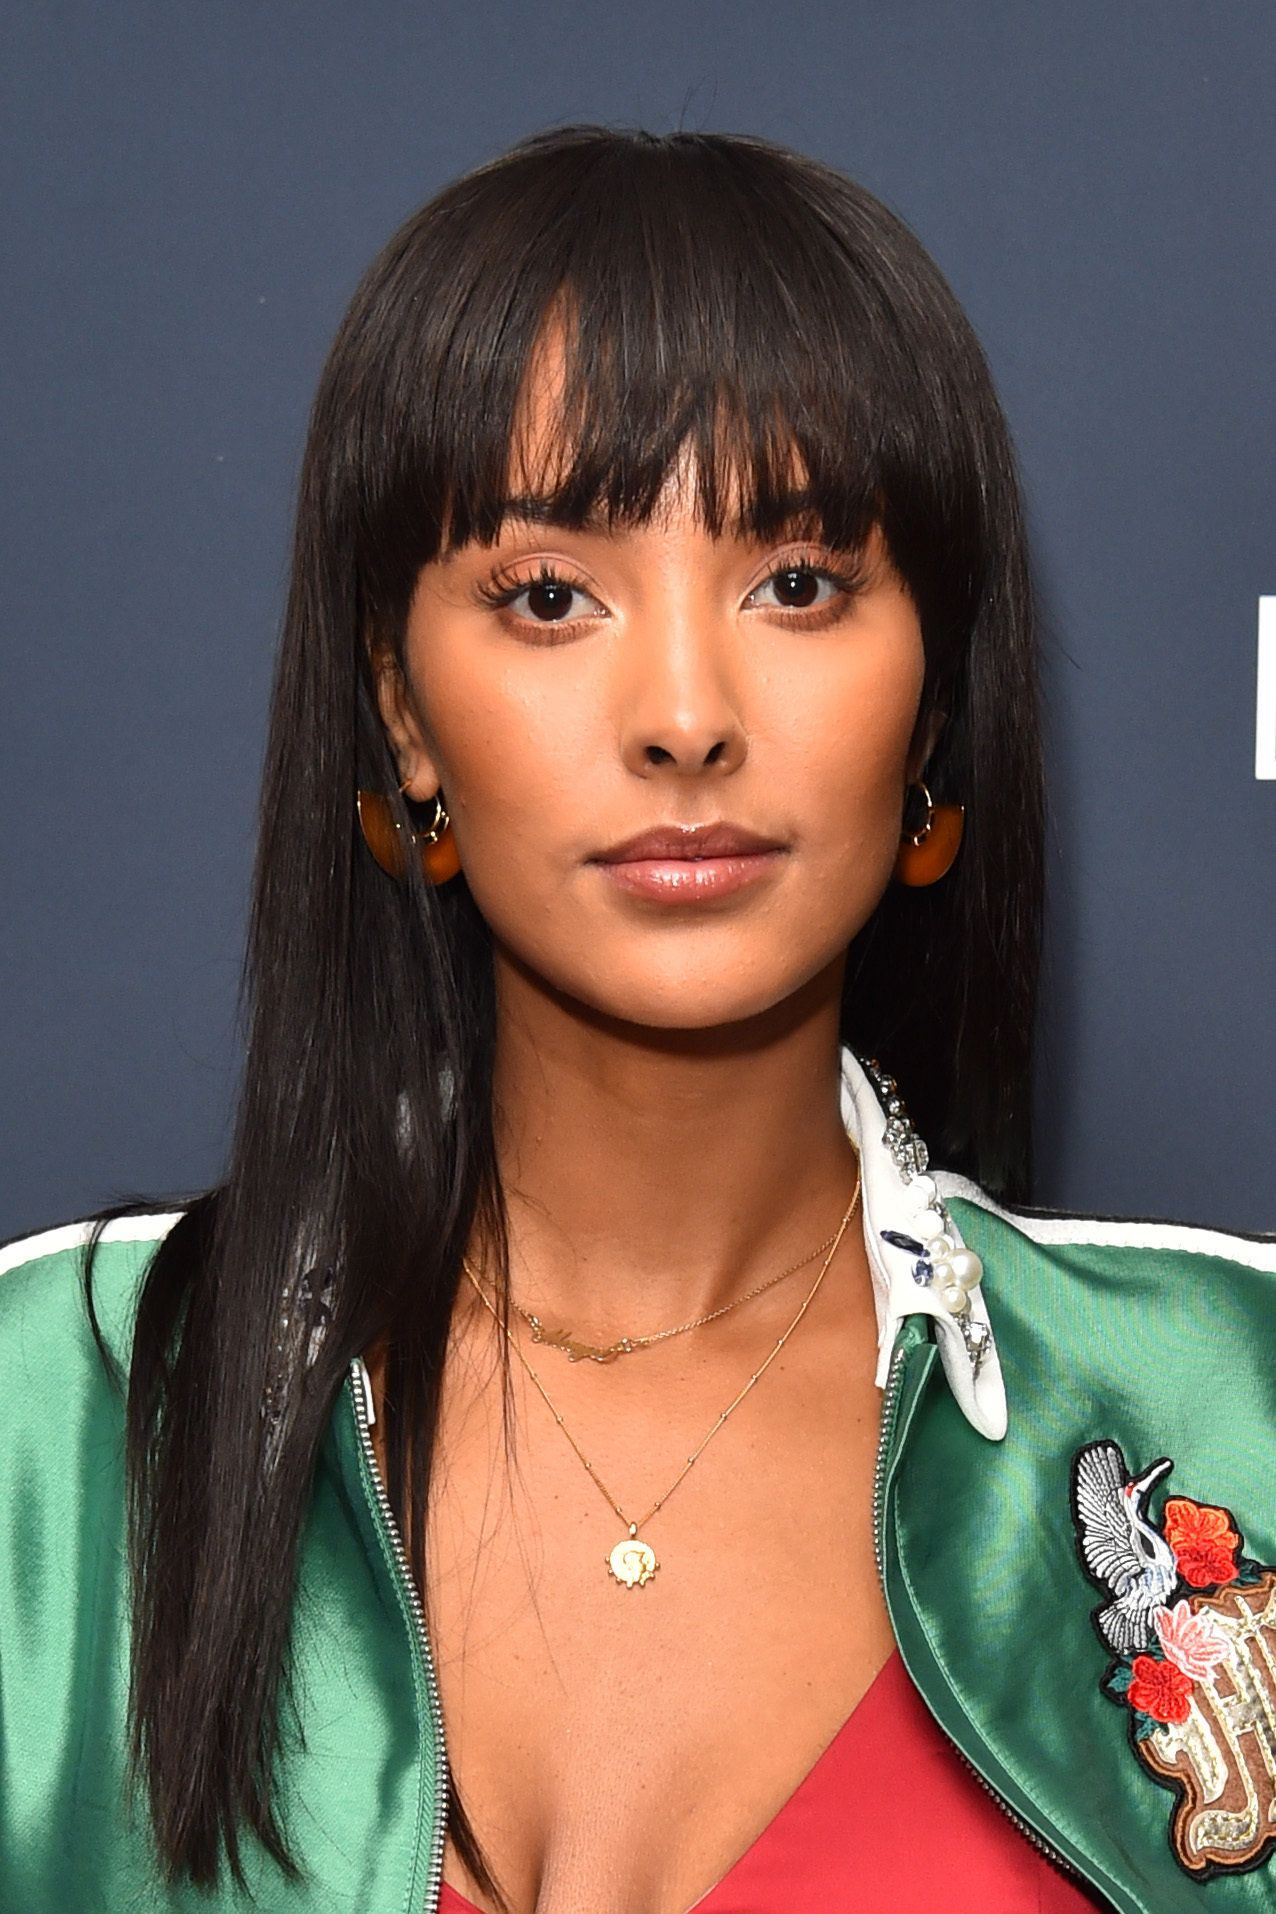 Maya Jama Apologises After Offensive Tweet About 'Dark-Skinned Women' Is